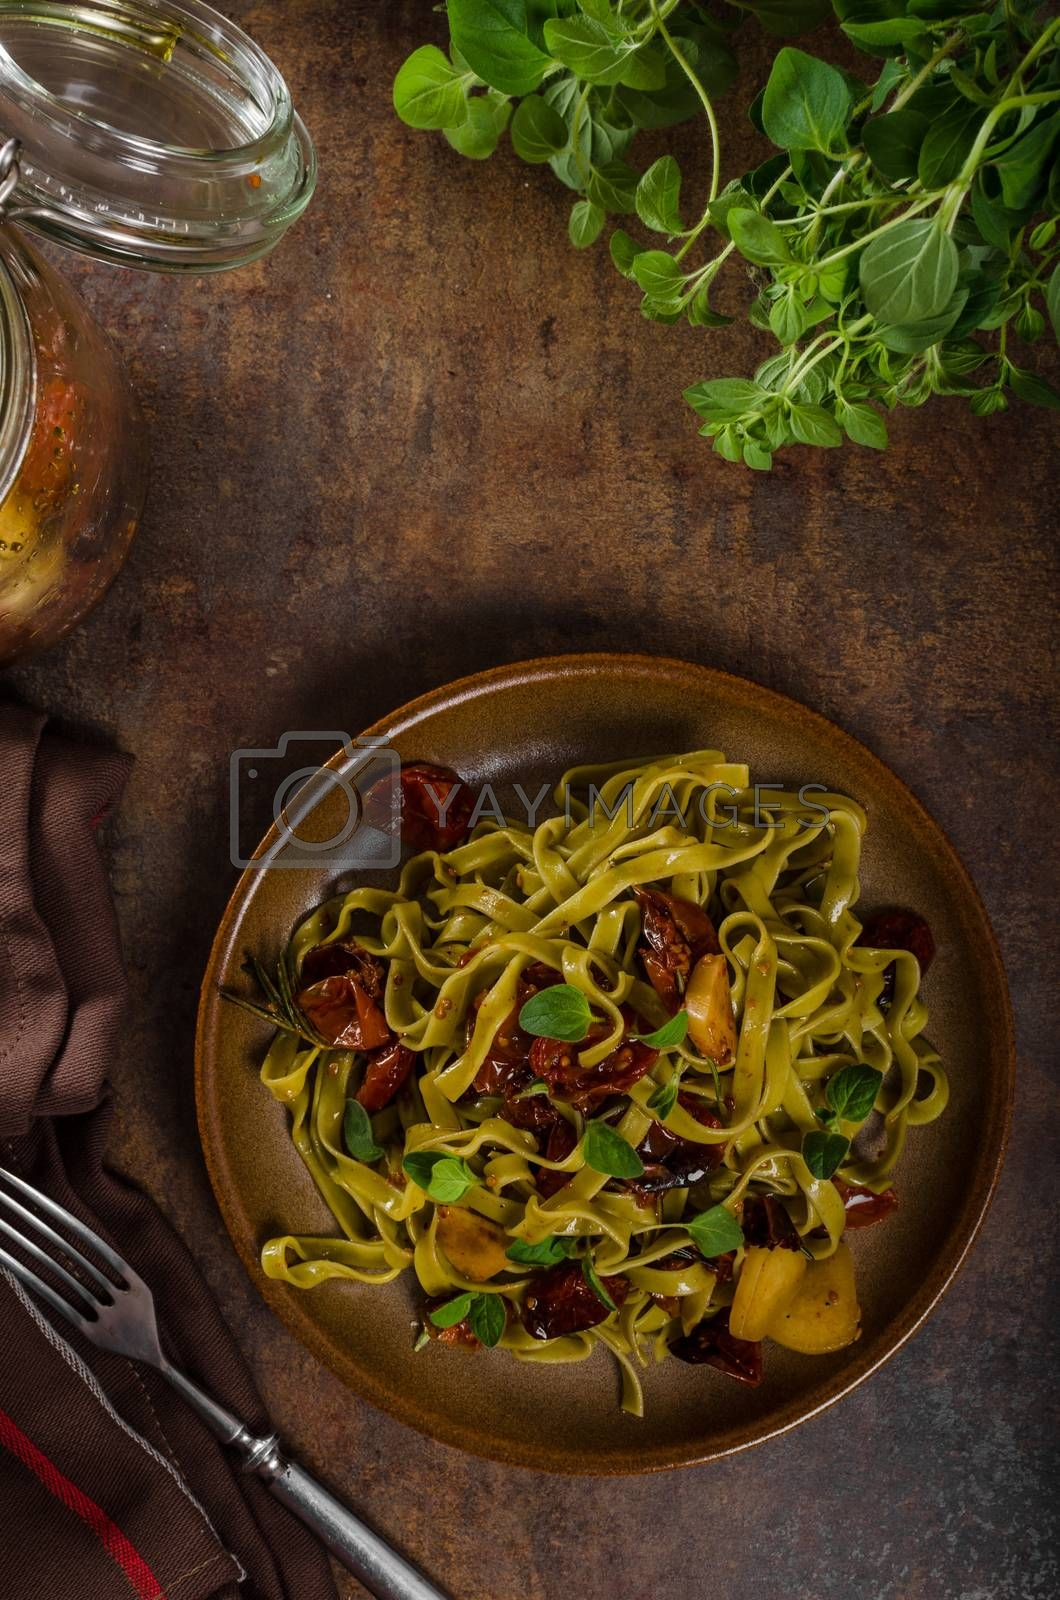 pasta with sun dried tomatoes and roasted garlic olive oil, fresh hebs in